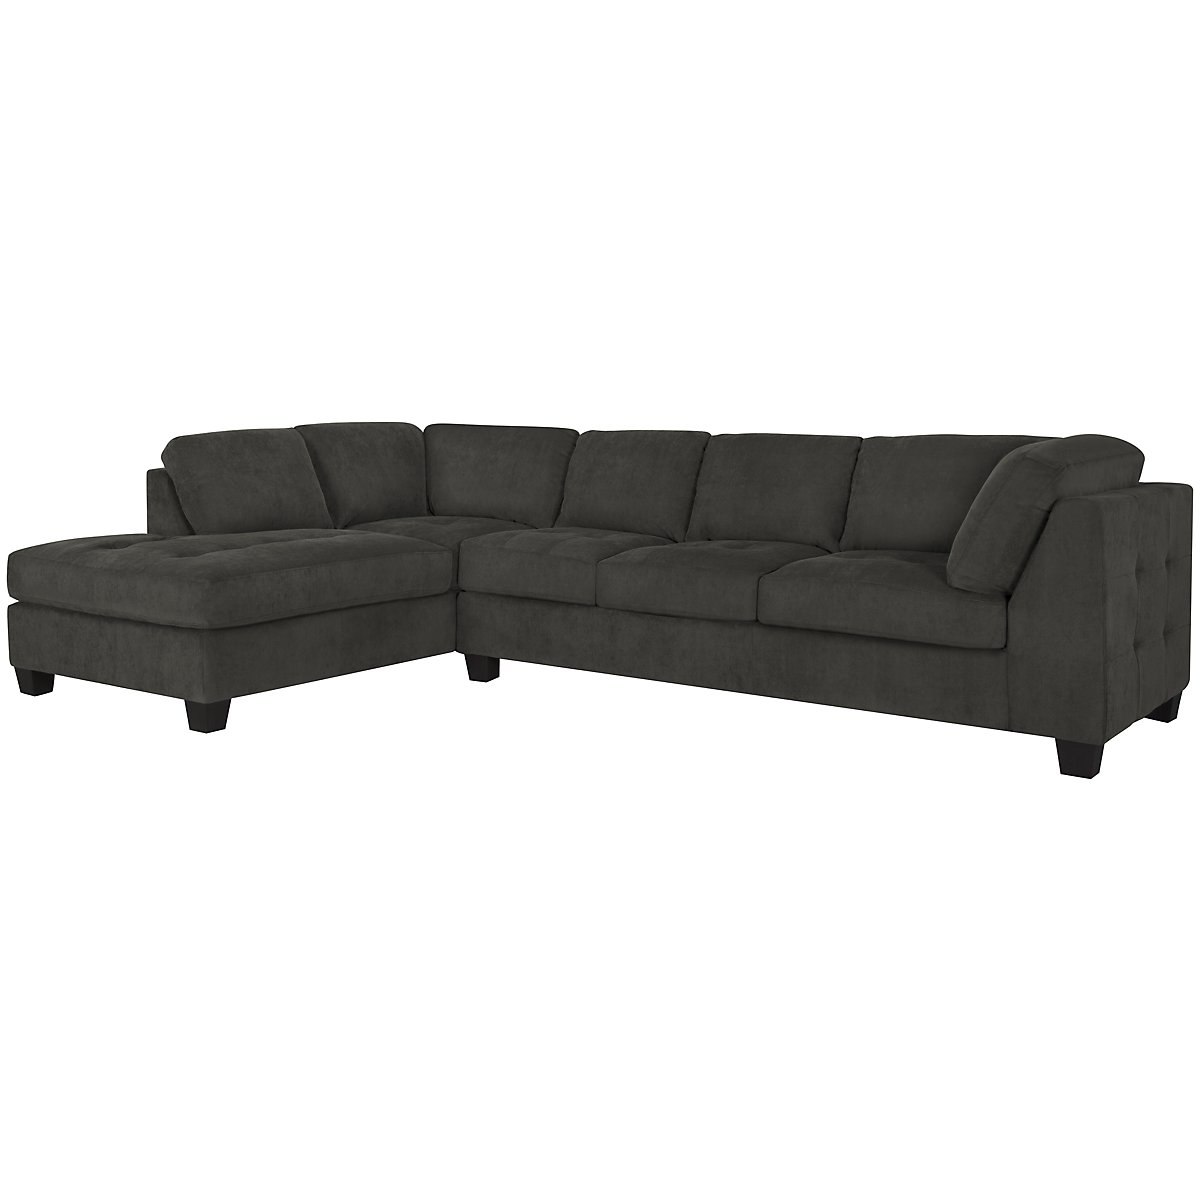 Mercer2 Dark Gray Microfiber Left Chaise Sectional